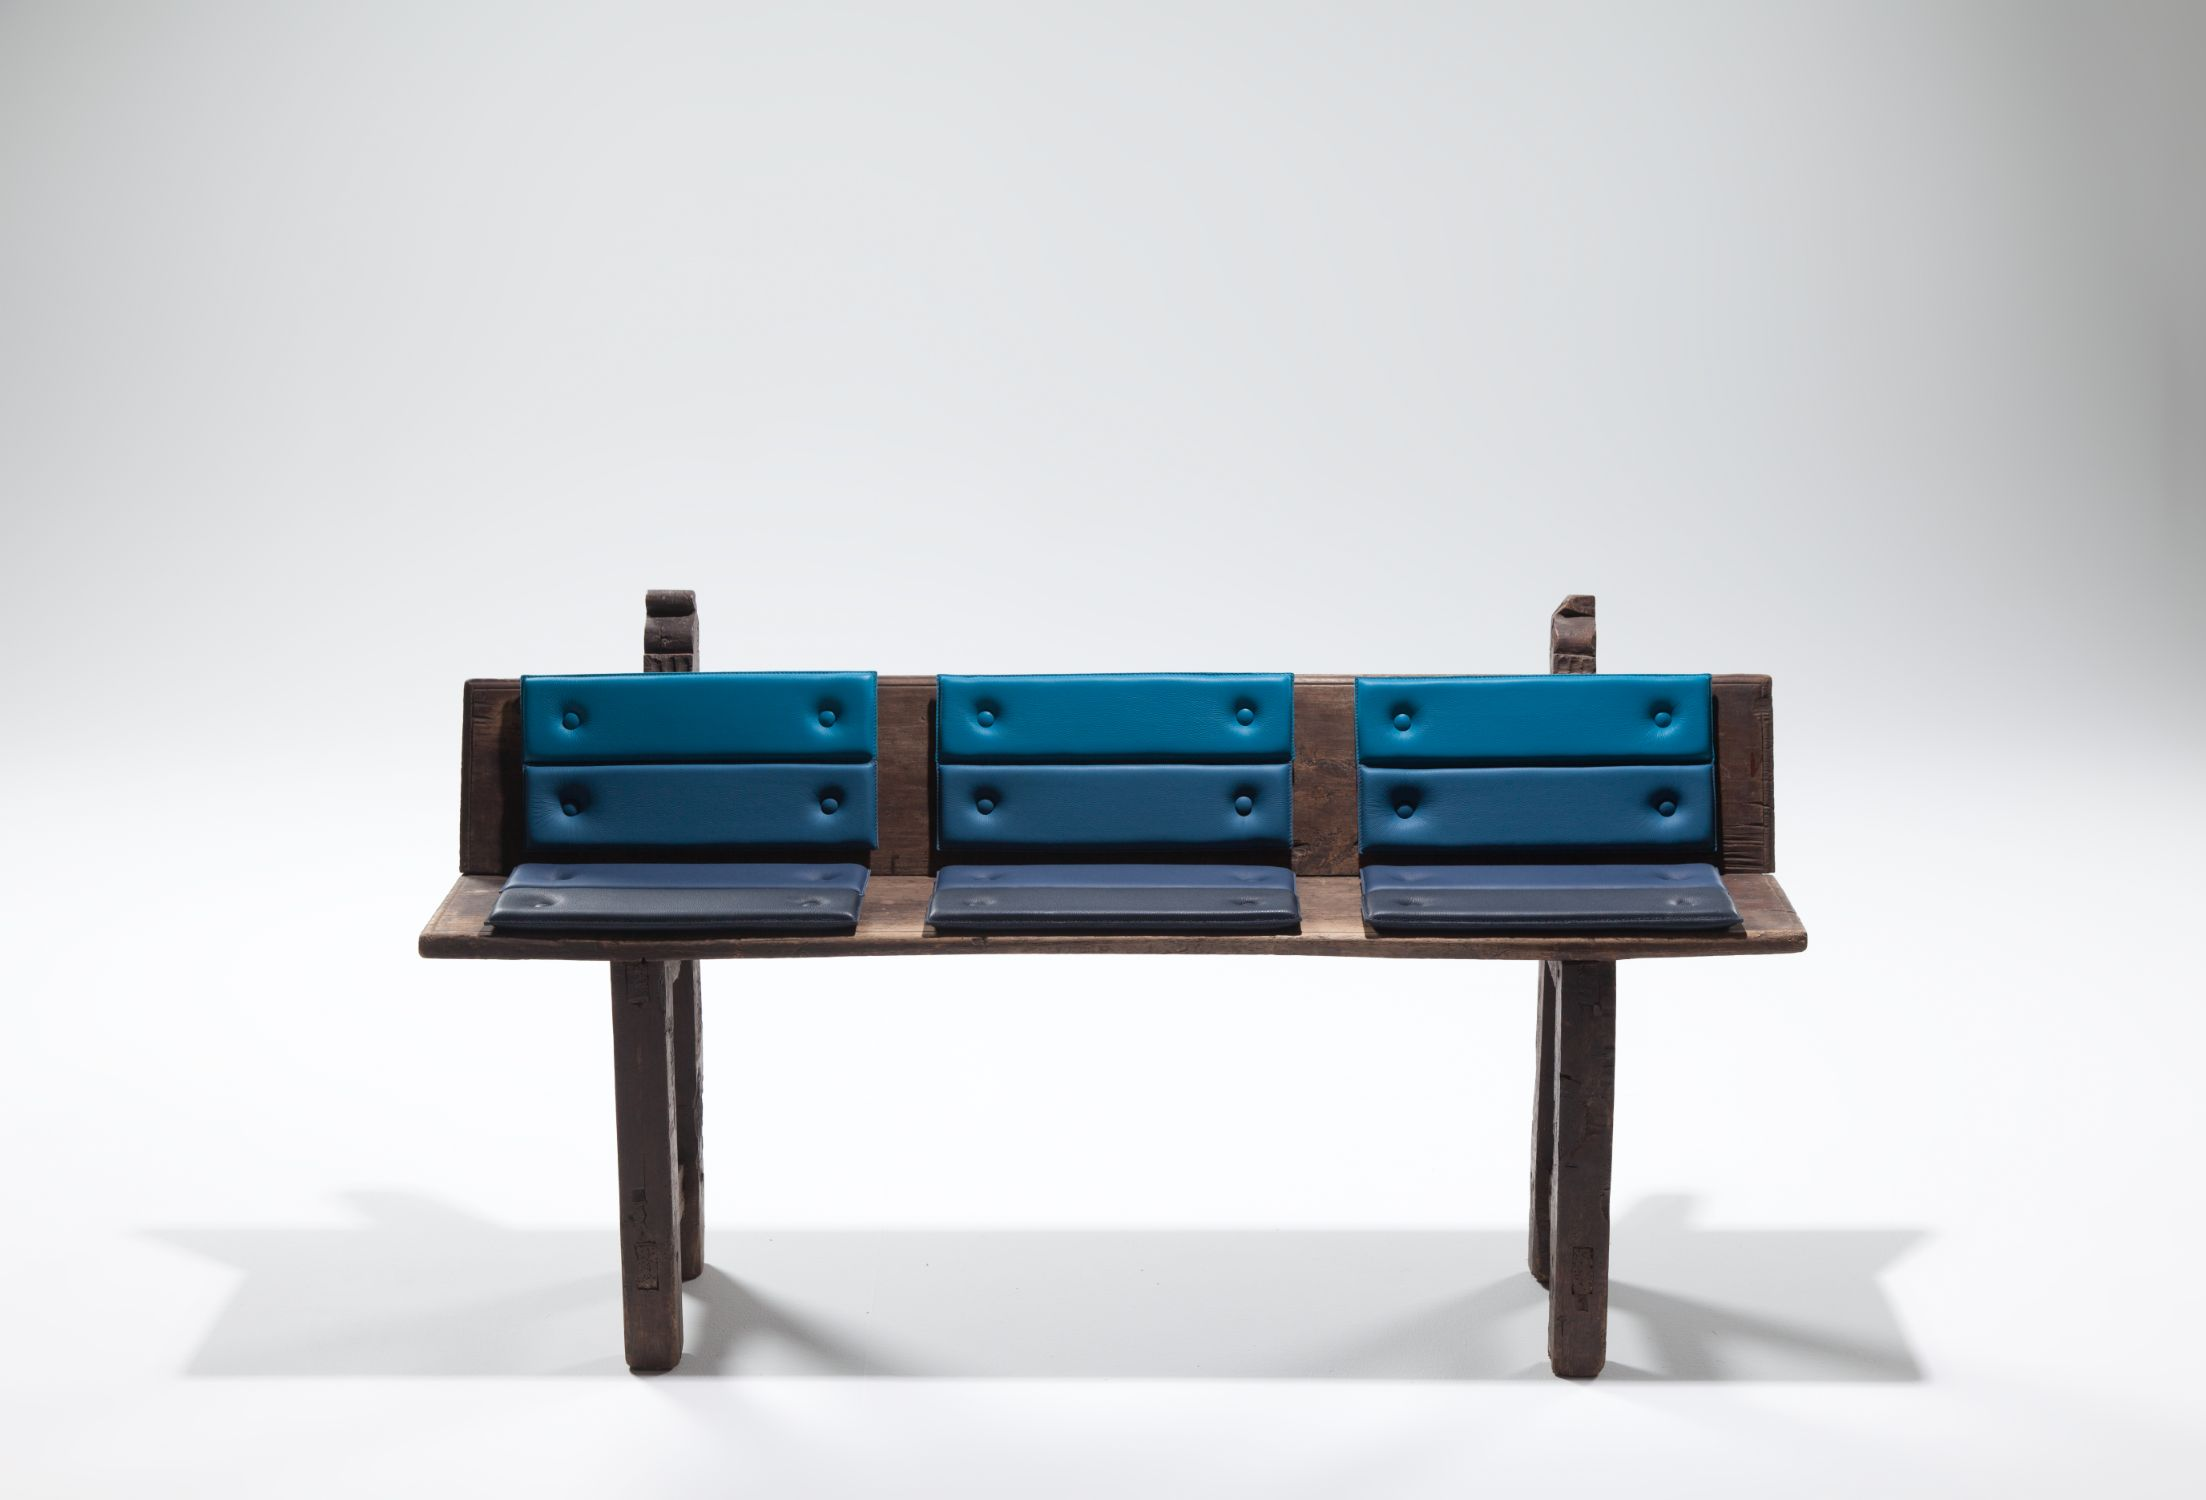 Transformed Antique Benches